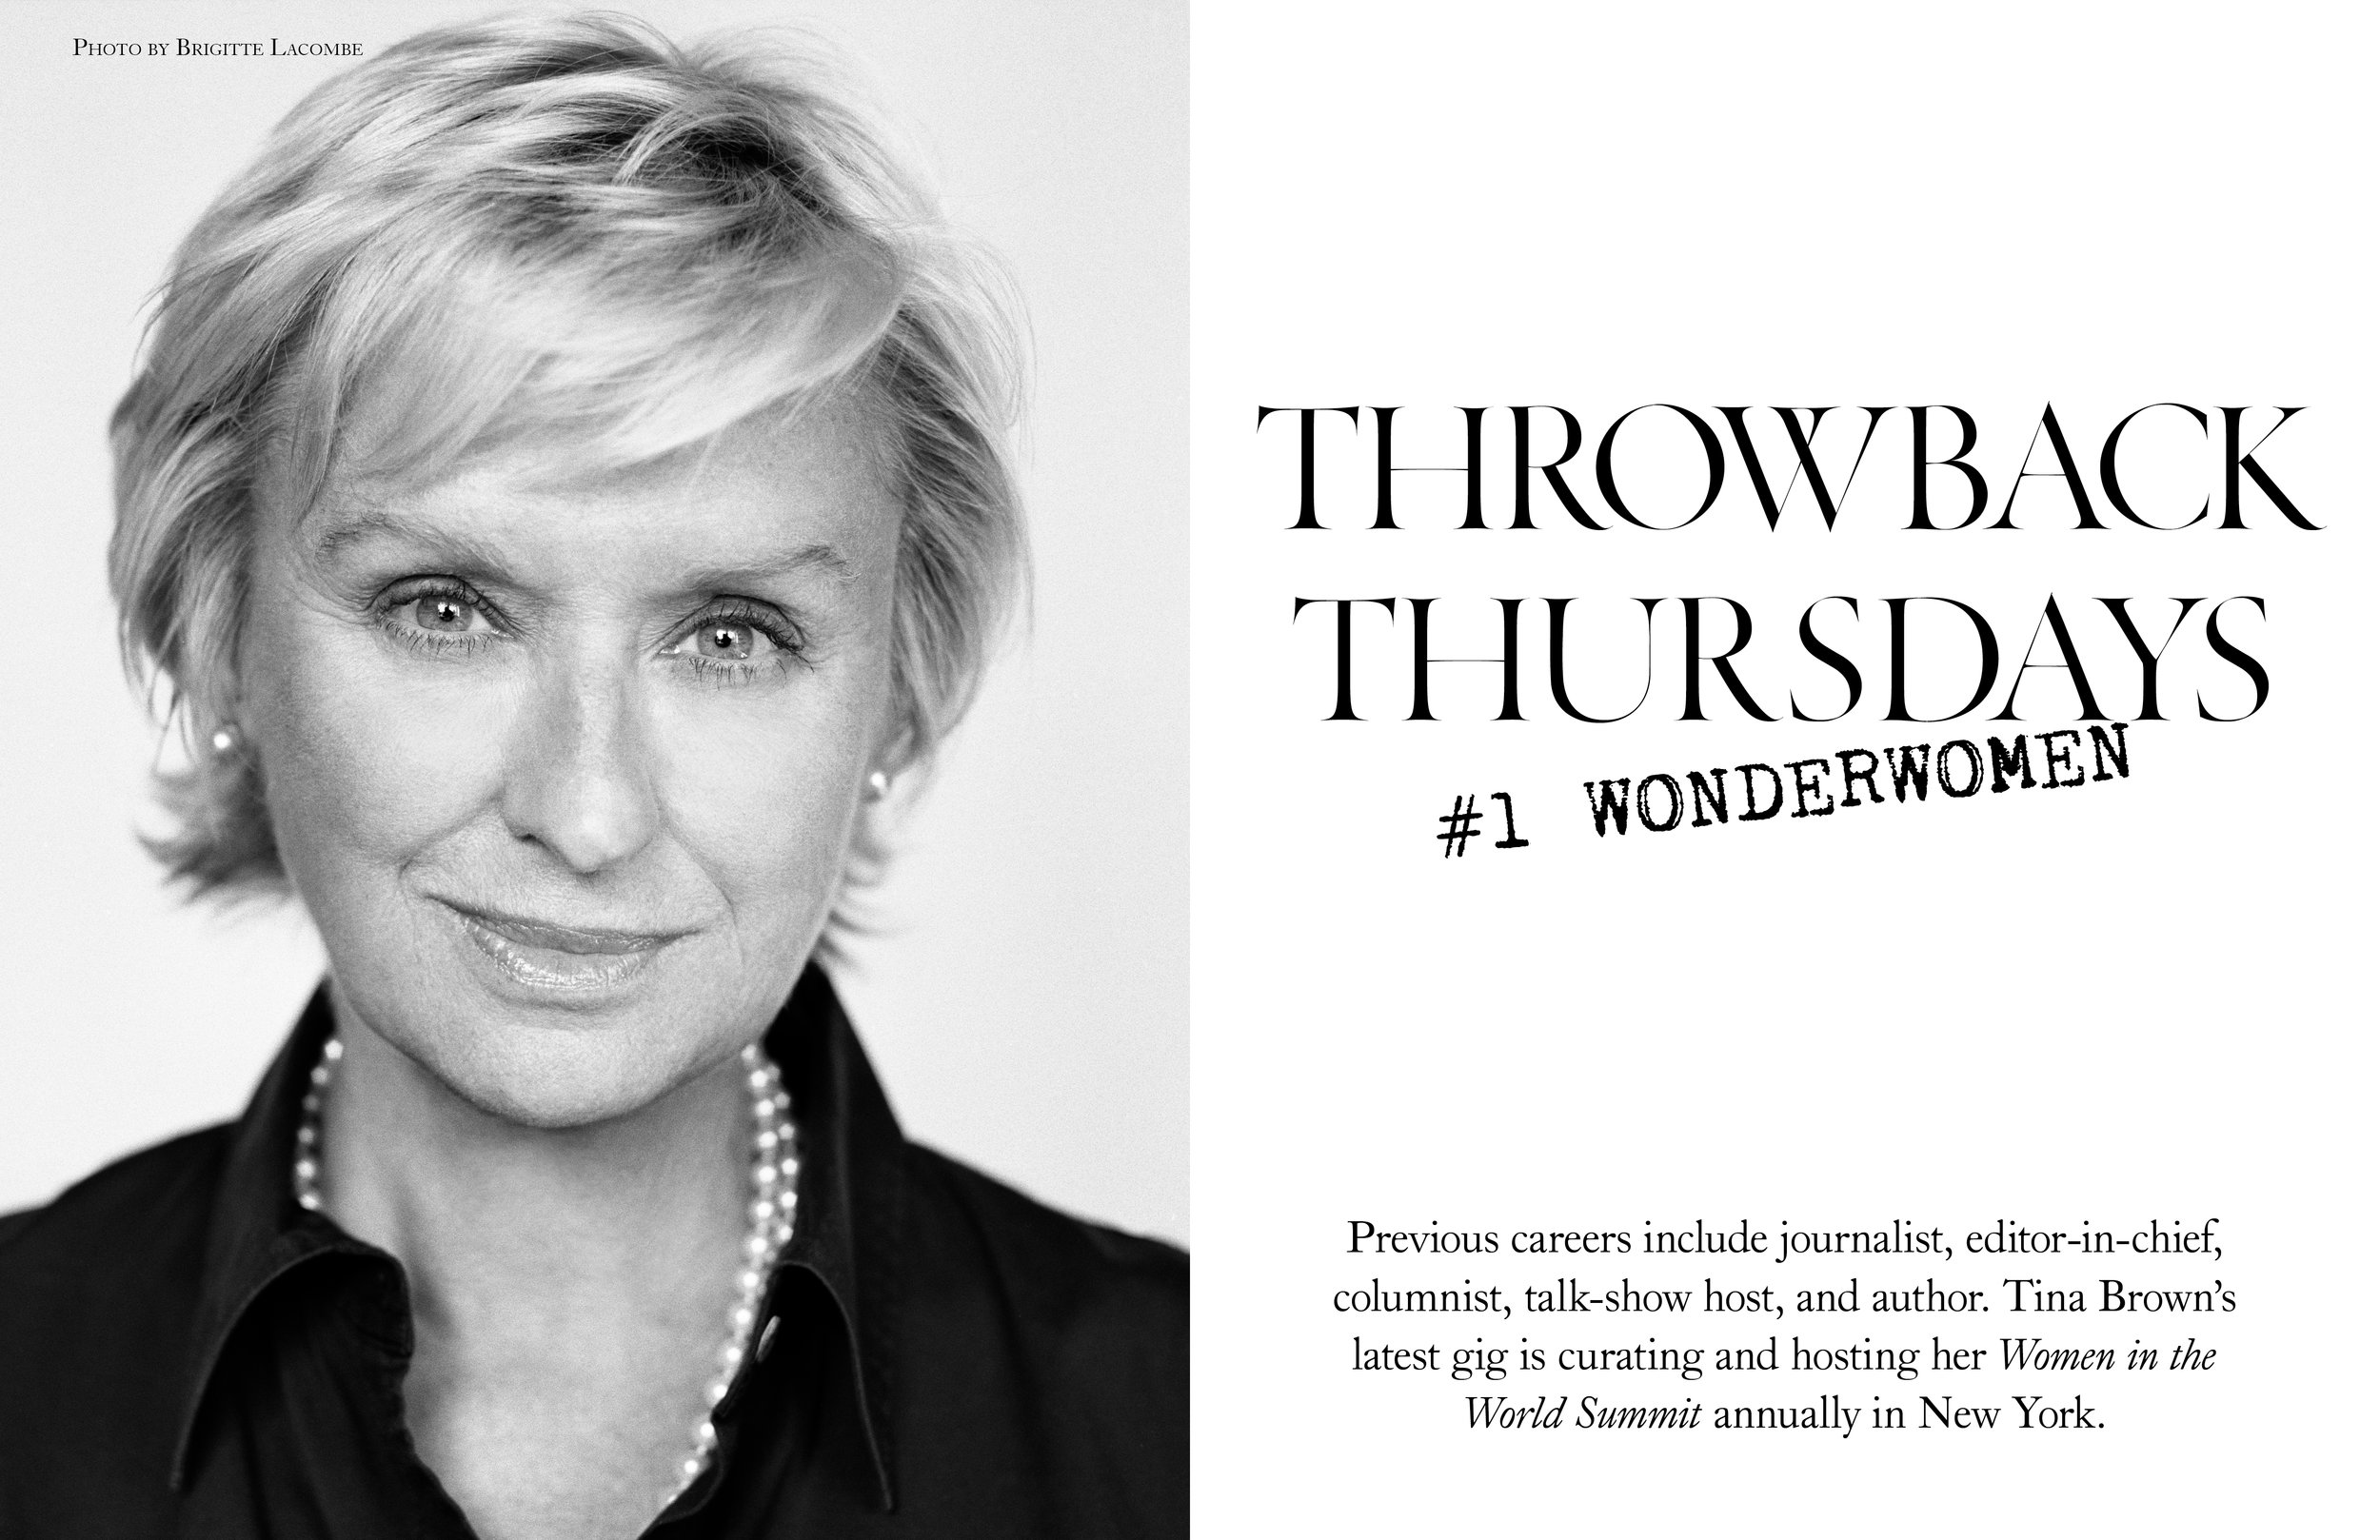 Throwback_Thursday_Tina Brown.jpg